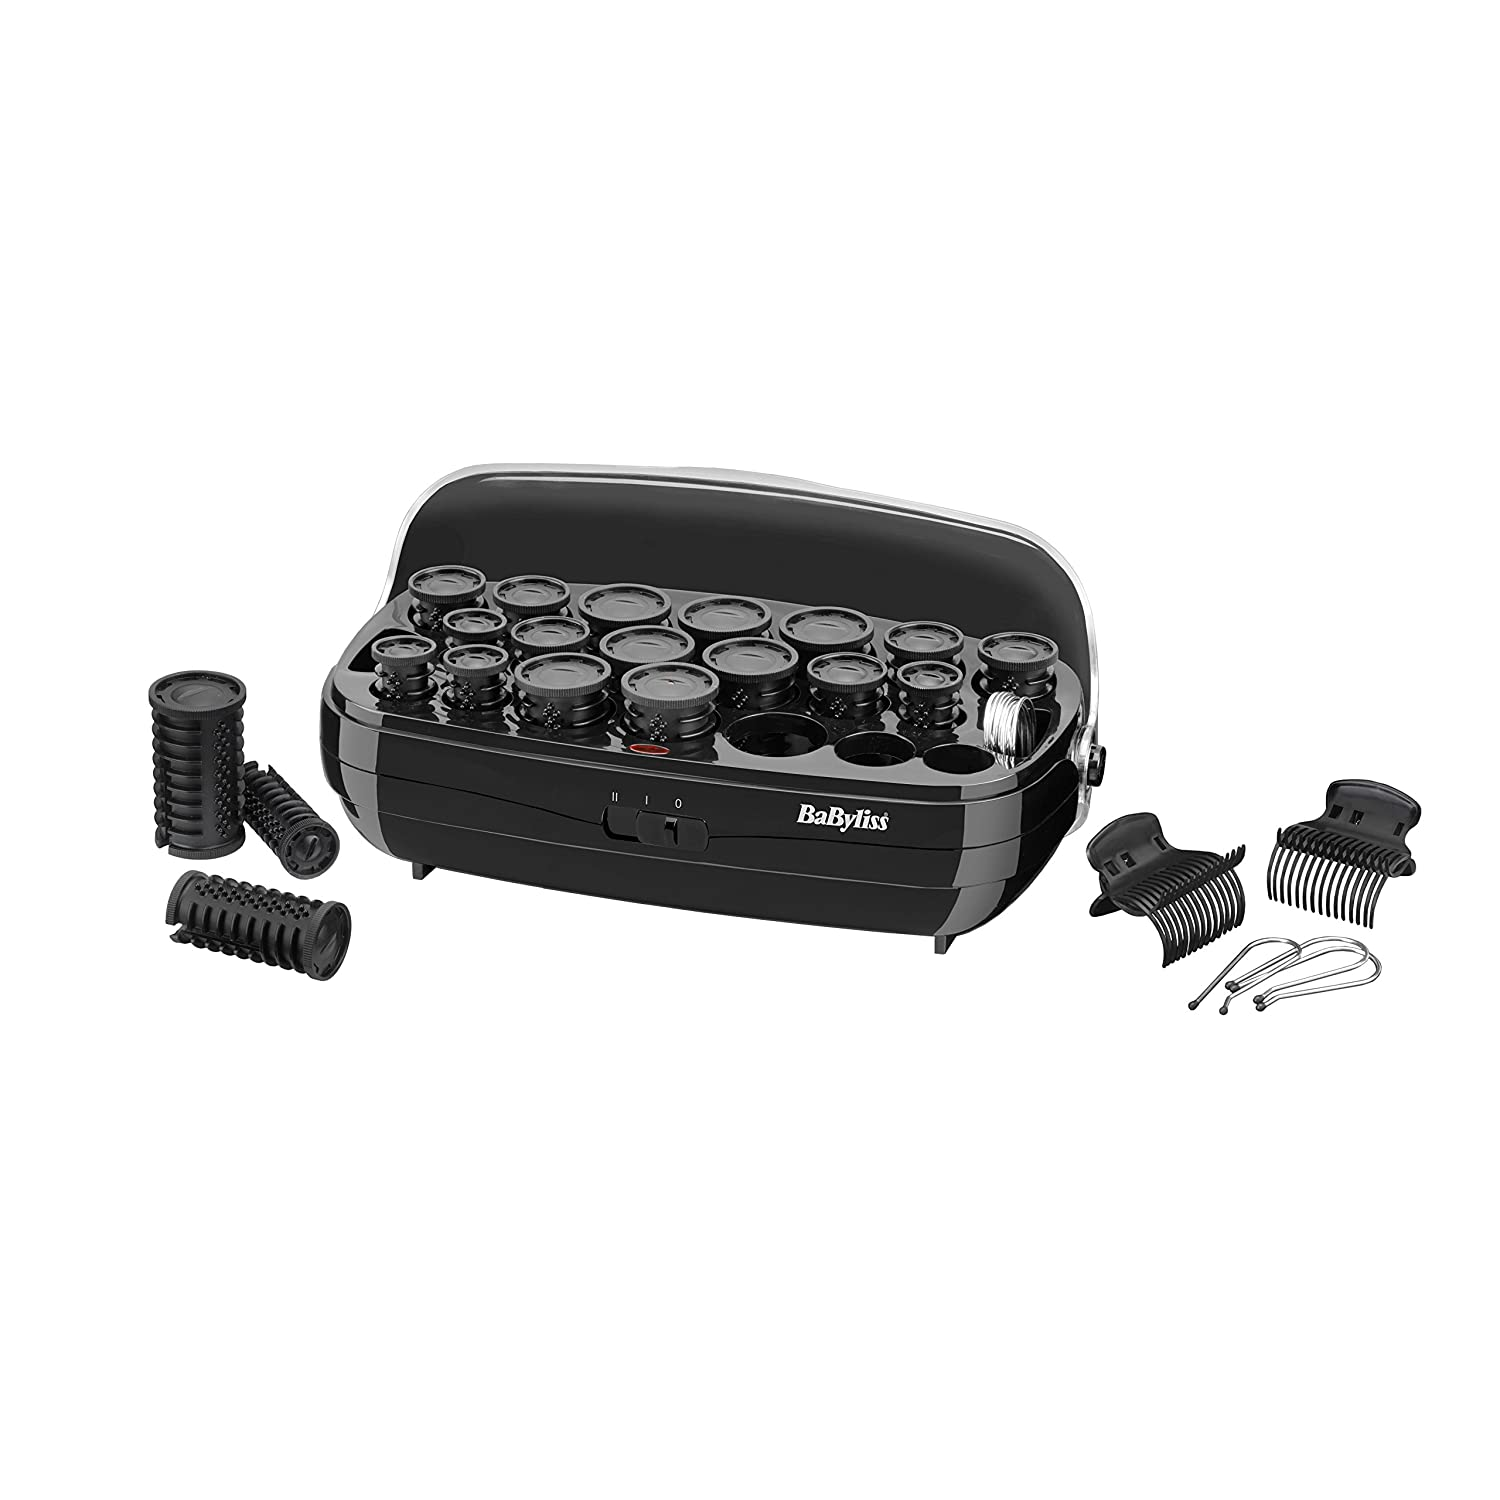 BaByliss Thermo-Ceramic Rollers - Black 3045U